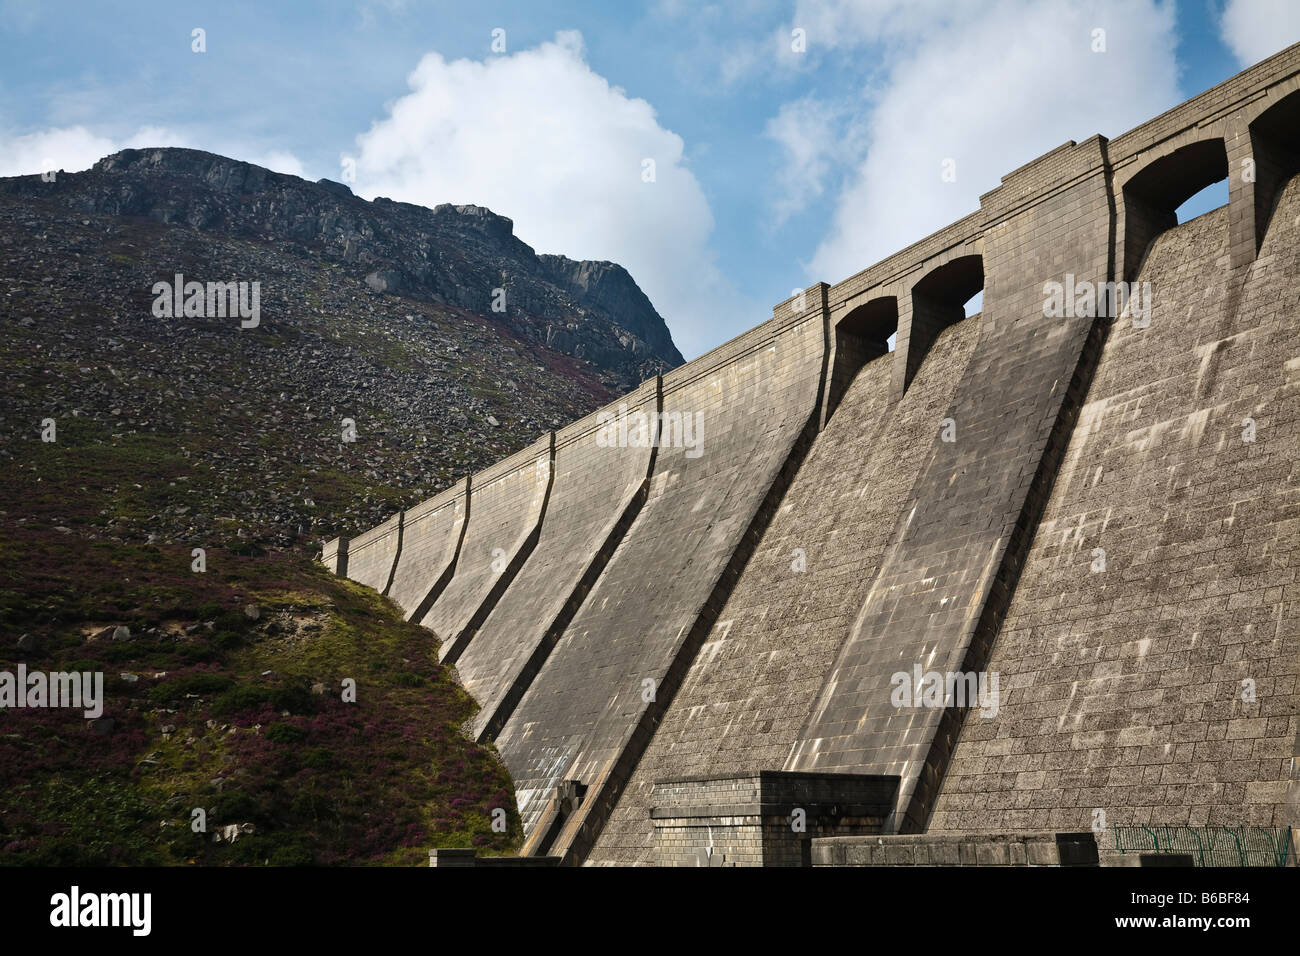 Ben Crom dam and Ben Crom Mountain, Silent Valley, Mourne Mountains, County Down, Northern Ireland - Stock Image